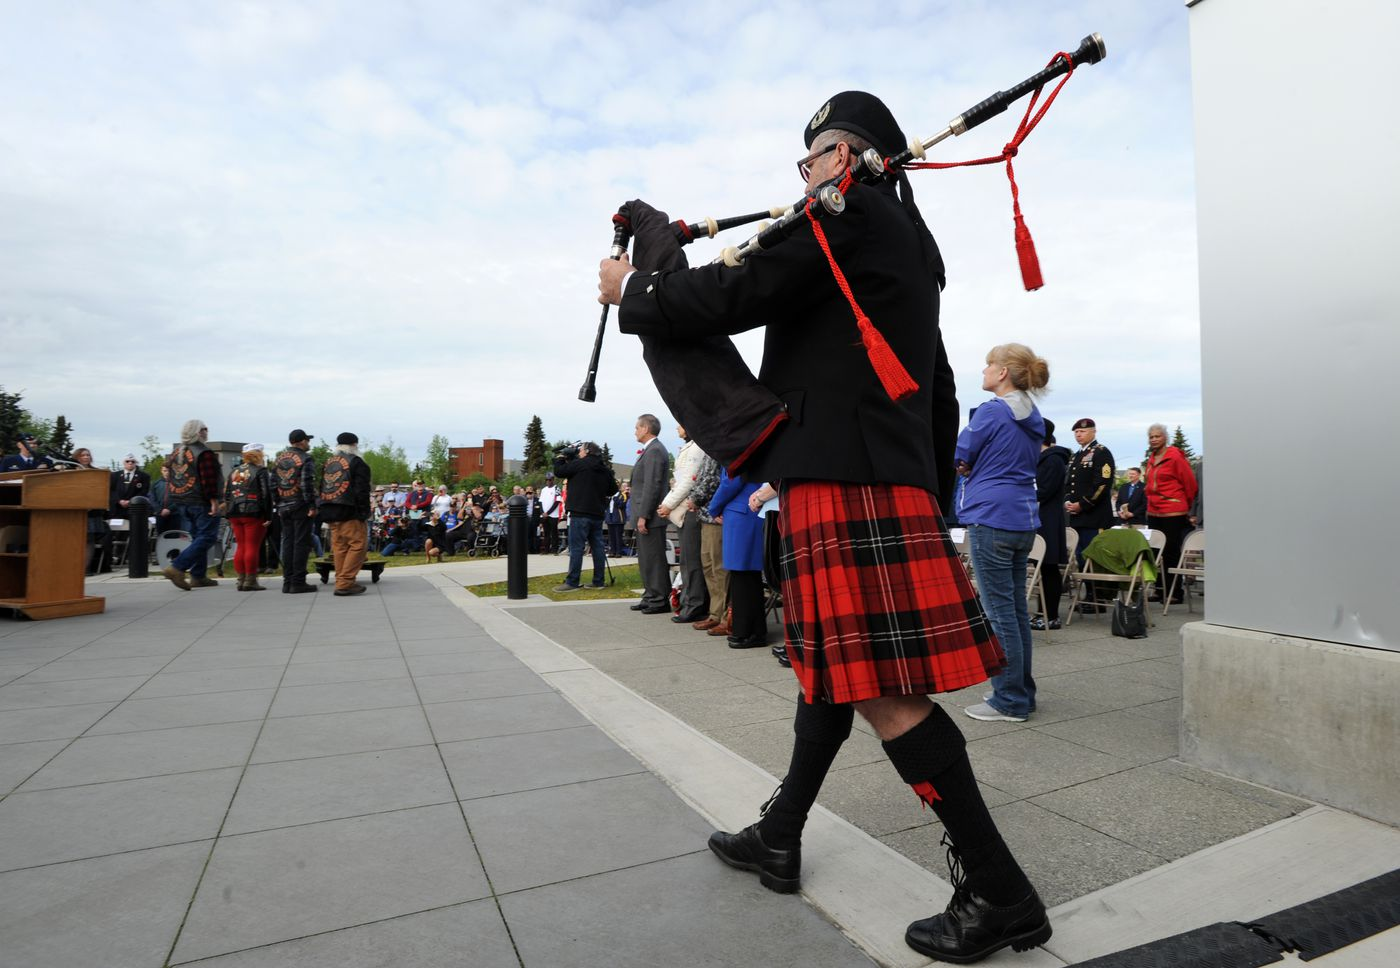 Ian White of the Crow Creek Pipes steps forward to play Amazing Grace for the Fallen Warrior ceremony during the Memorial Day remembrance. (Anne Raup / ADN)